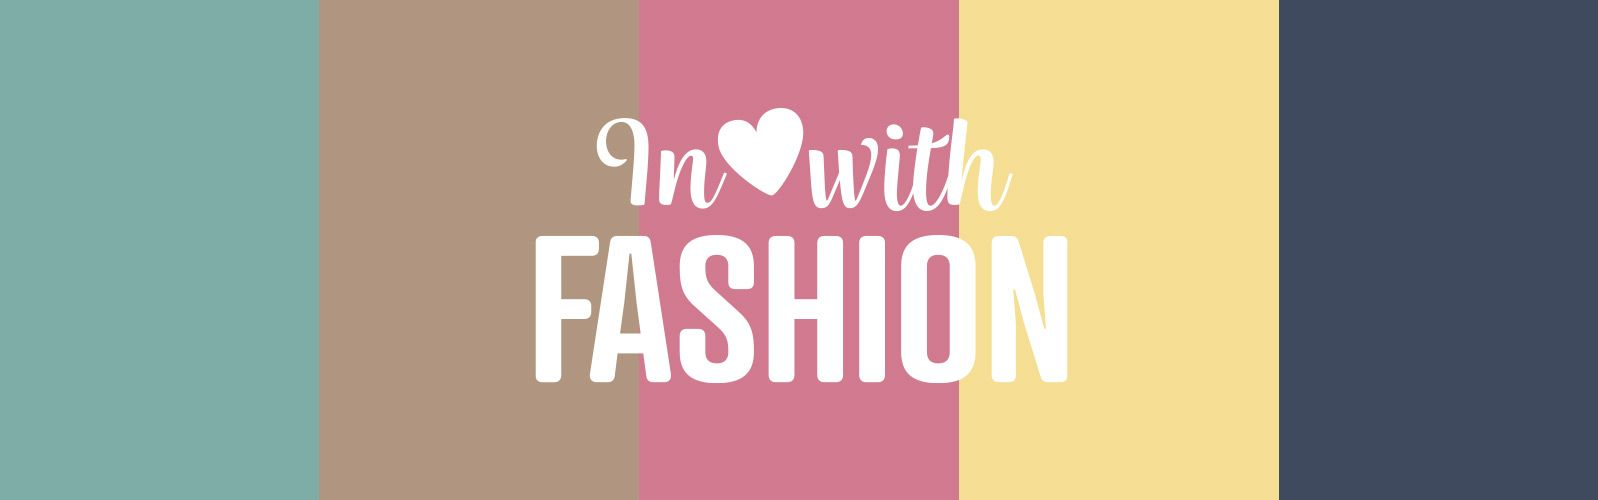 In love with Fashion